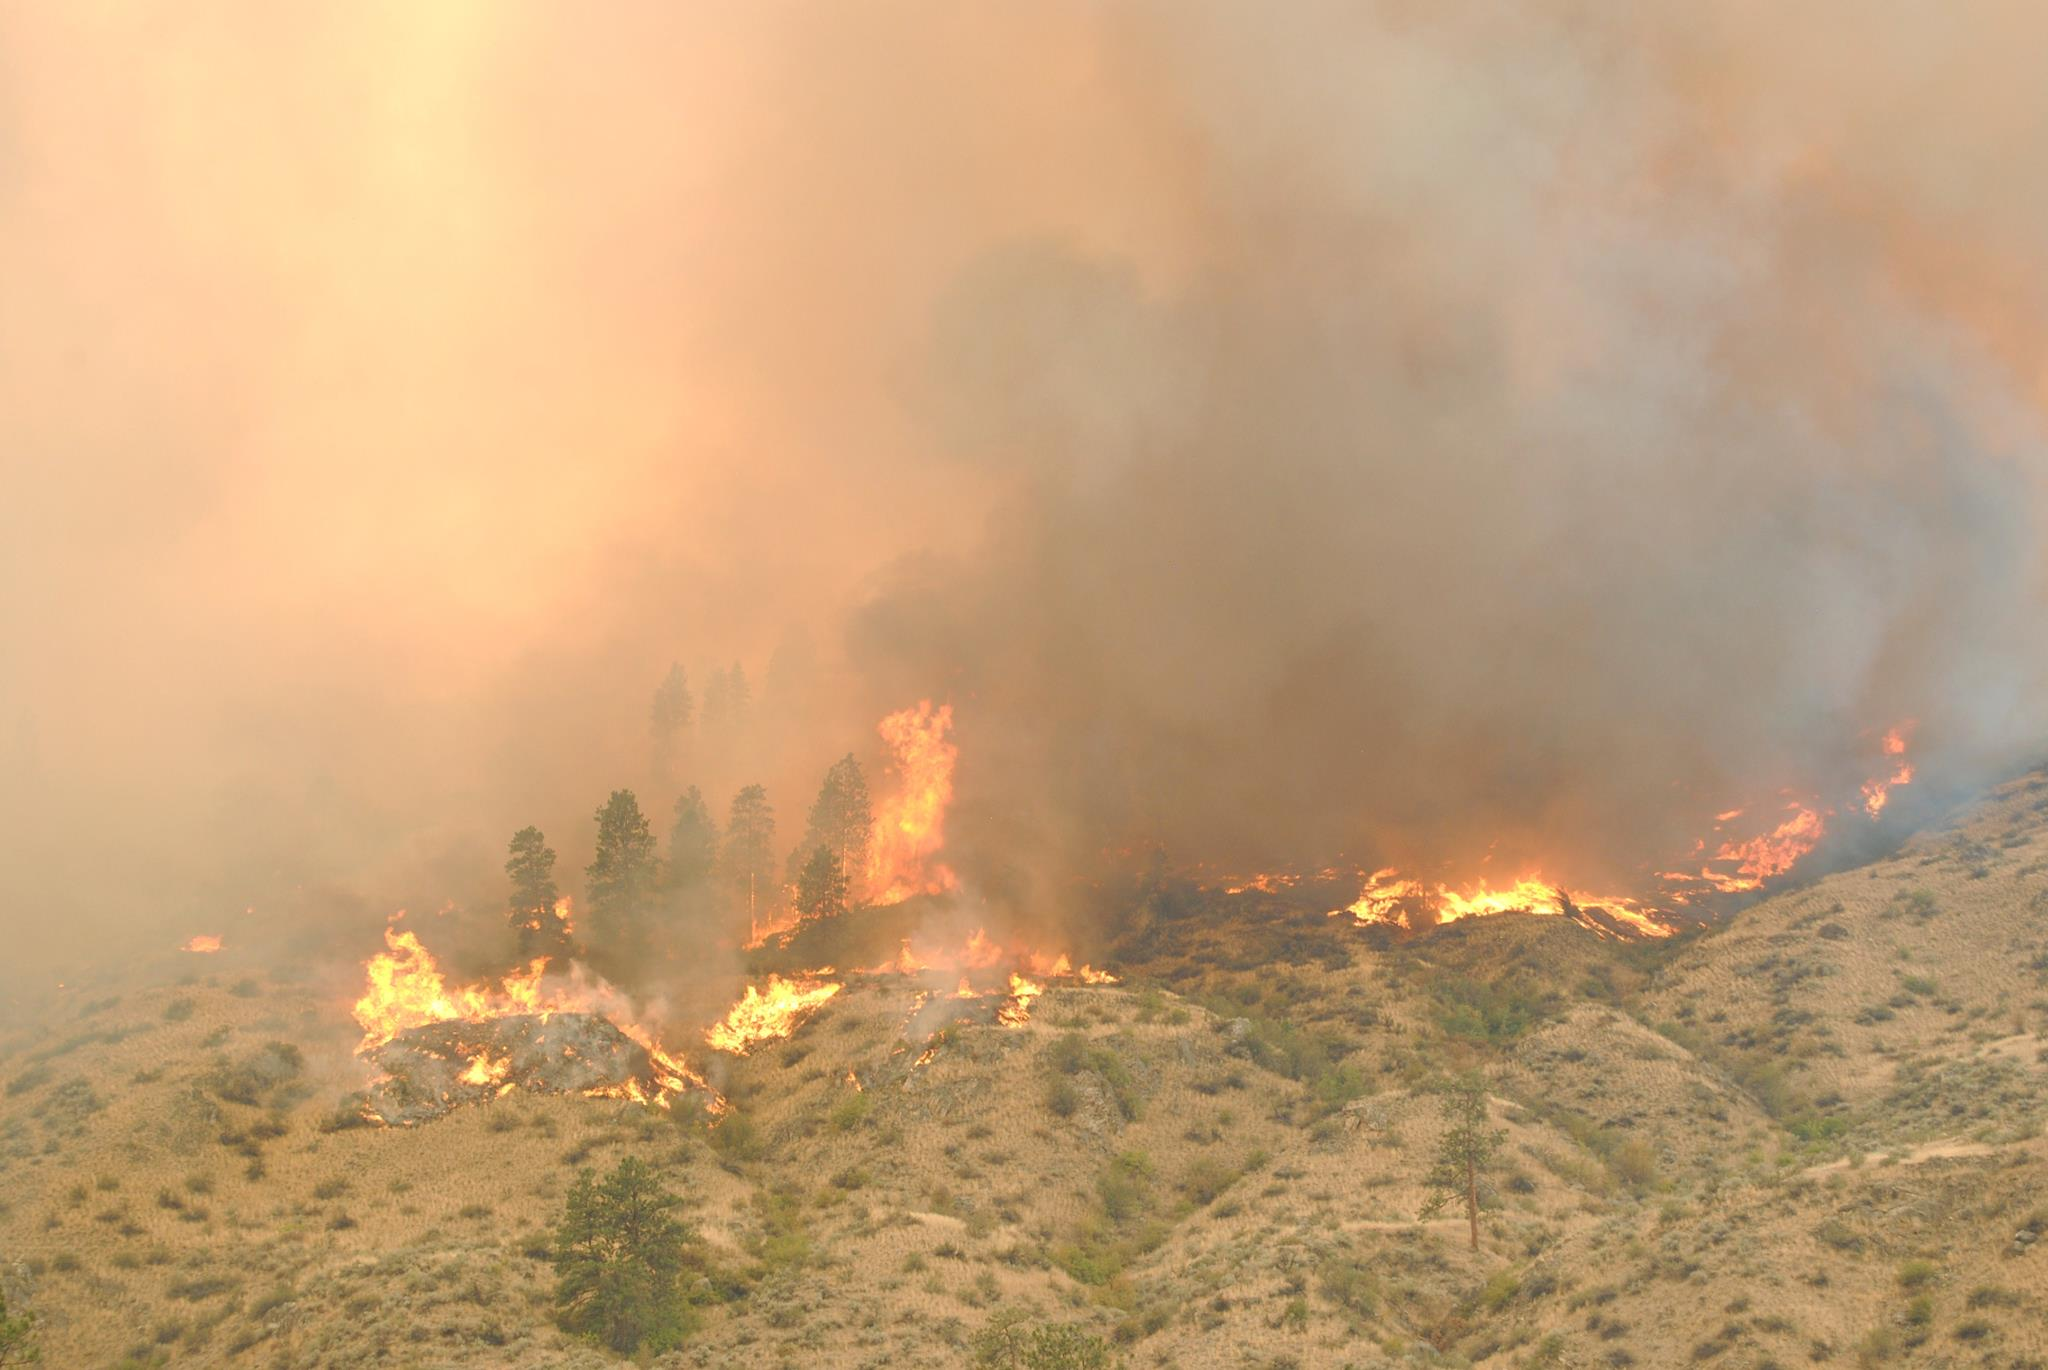 Legislature poised to cut firefighting budget despite drought threat